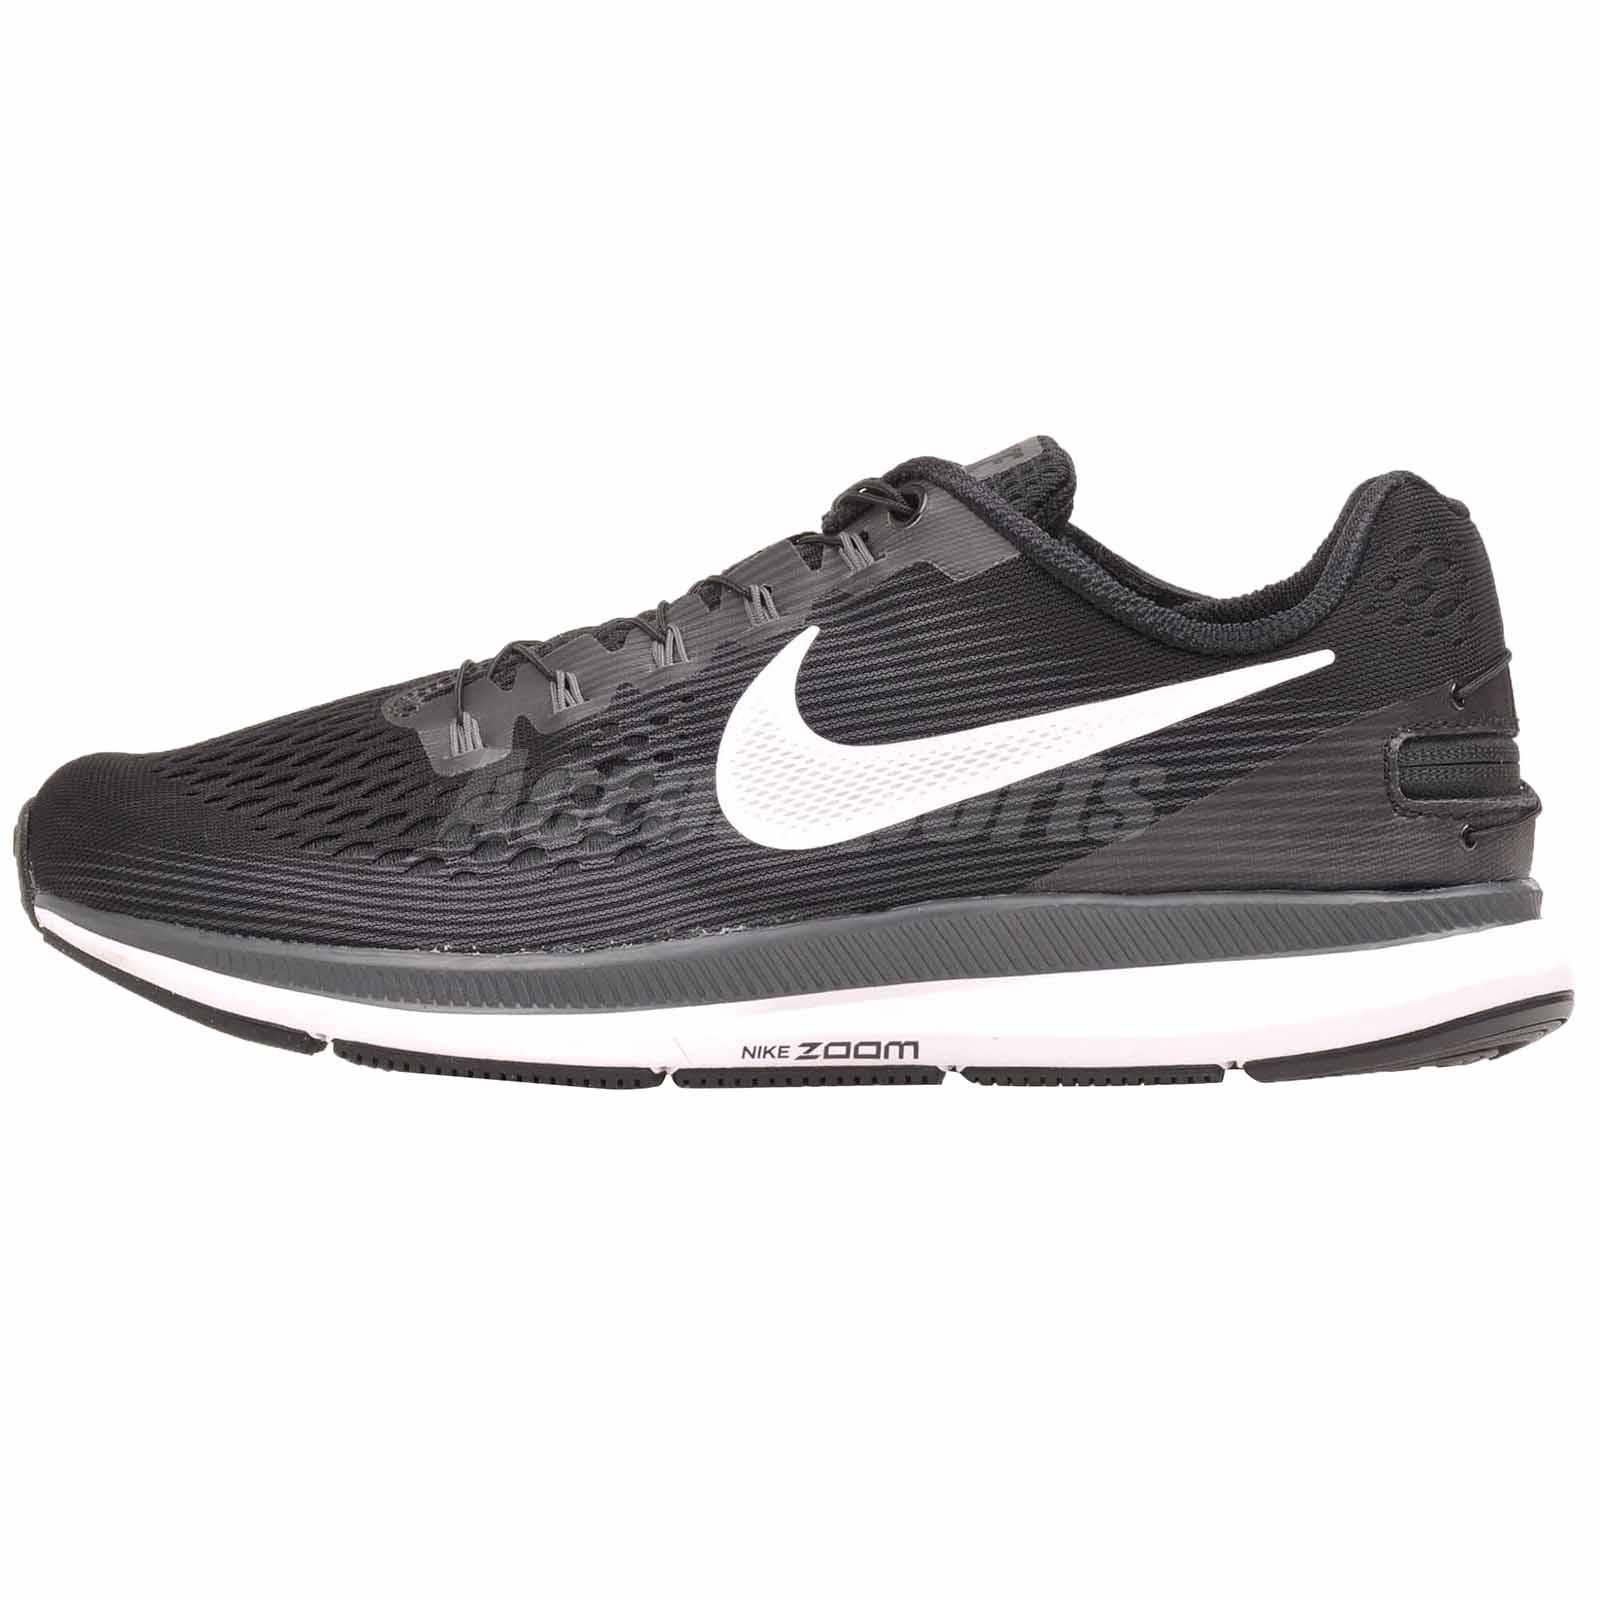 3008c7fb4aea Nike Zoom Pegasus 34 Flyease Running Mens Shoes Black White Grey 904678-001